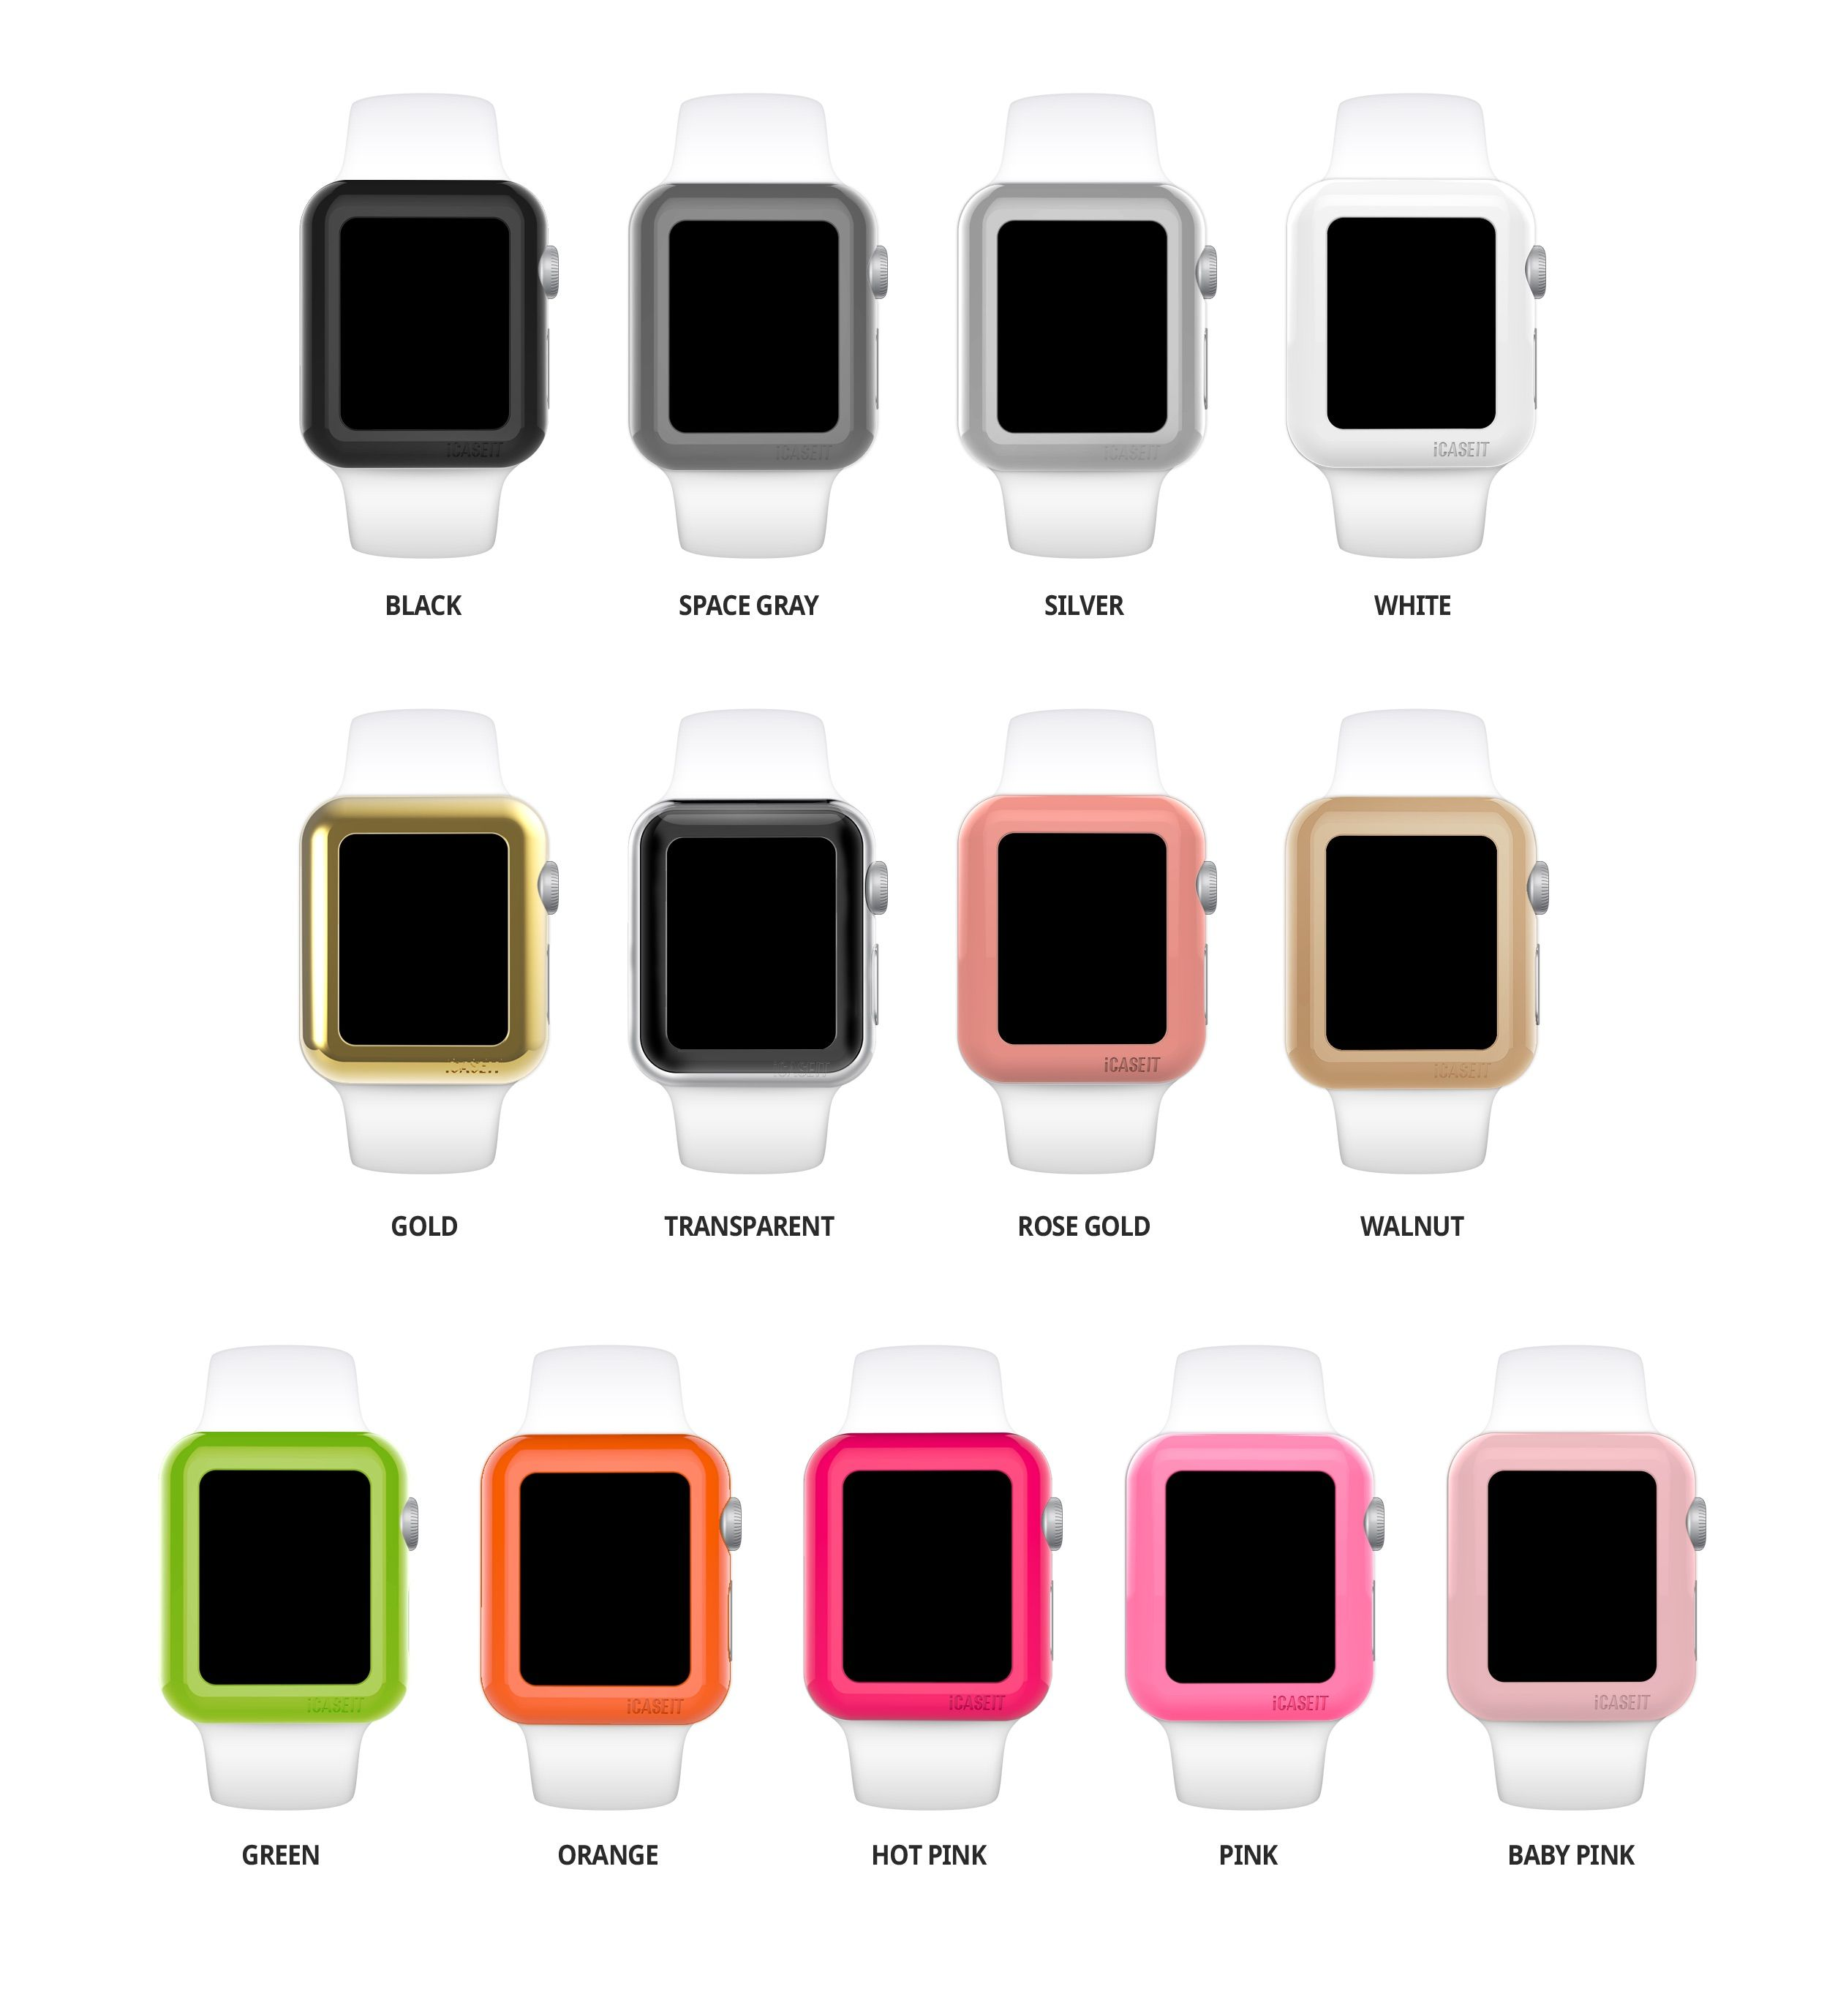 Apple Watch Case Glass 38mm Pack Of 3 Gold Rose Gold Walnut Apple Watch Case Apple Watch Accessories Apple Watch Edition